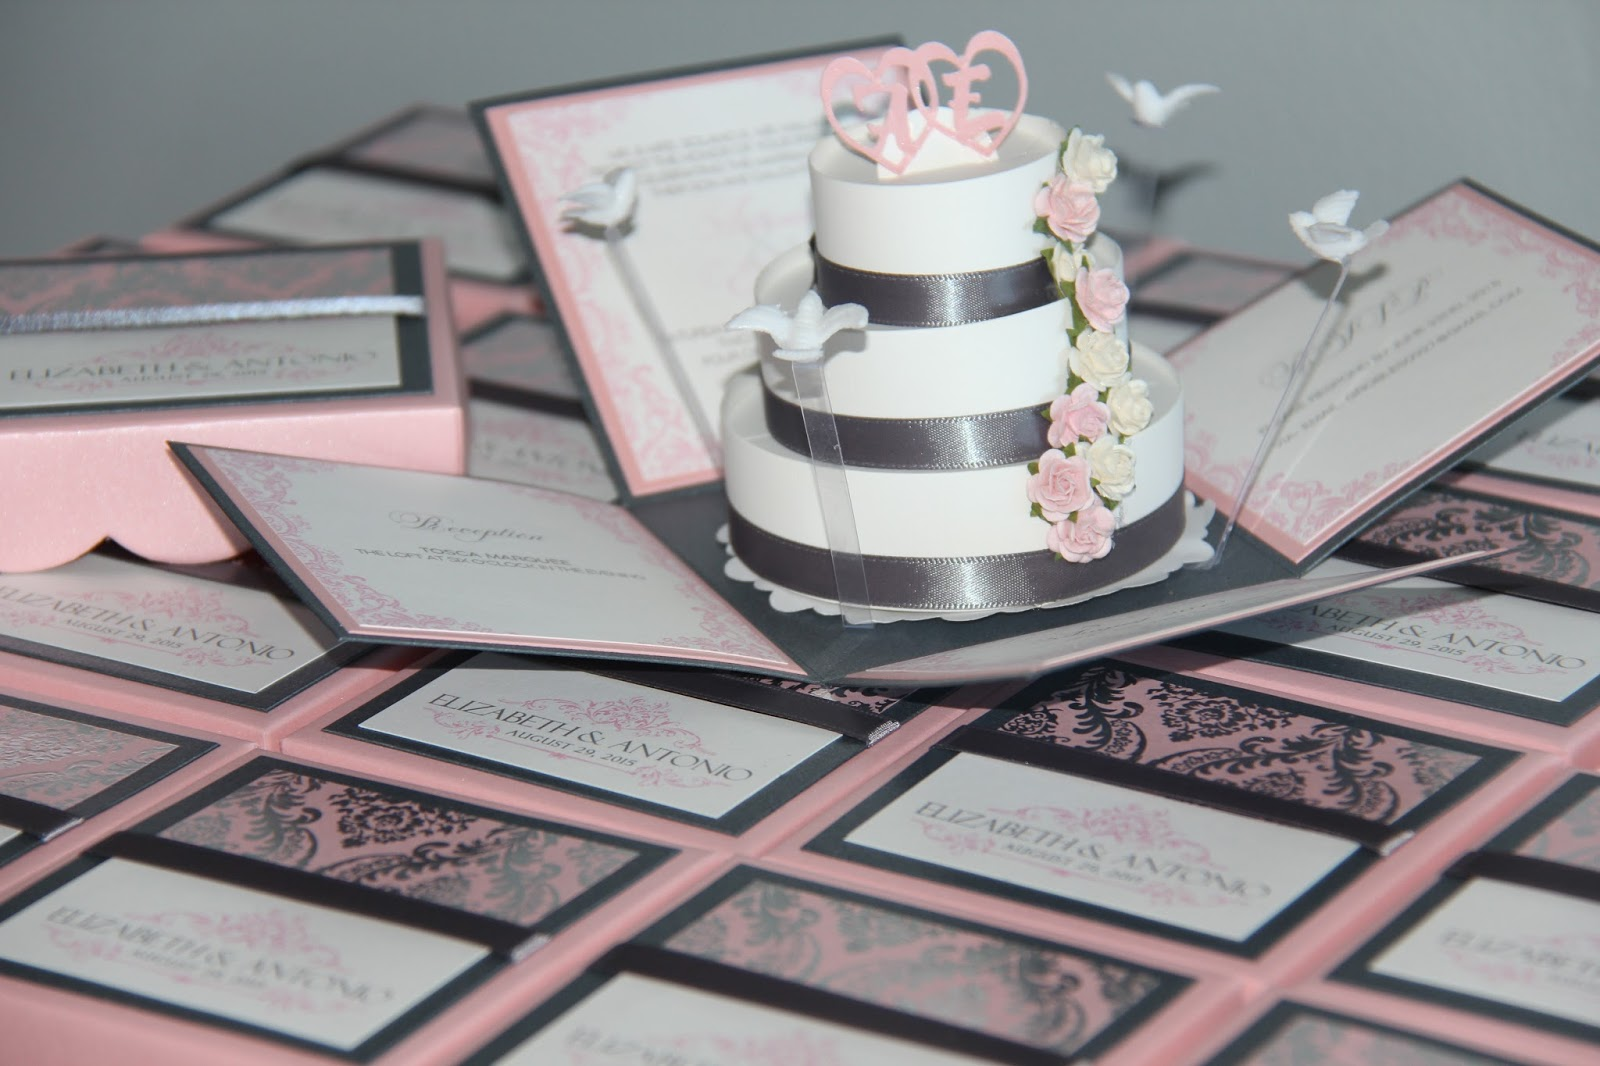 jinkyscrafts blogspot masquerade wedding invitations Pink and Gray Modern Wedding Invitations Exploding Box Pop Up Invites